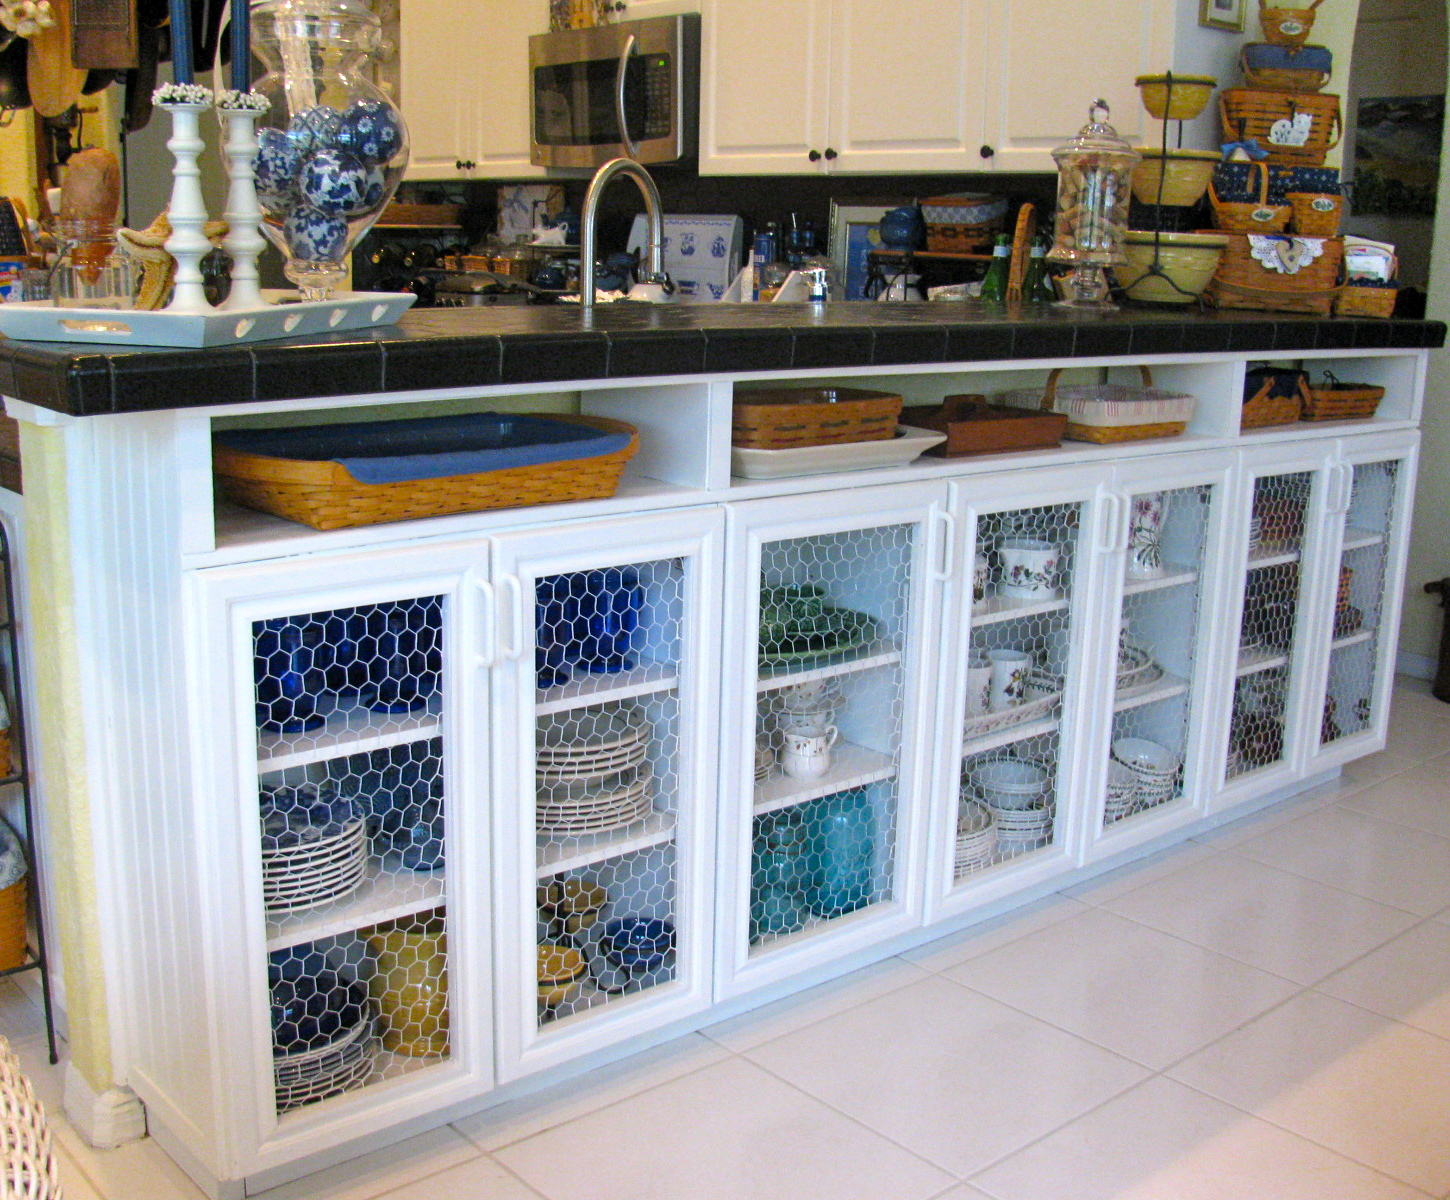 Our Biggest Project Was Repurposing Salvaged Kitchen Cabinets